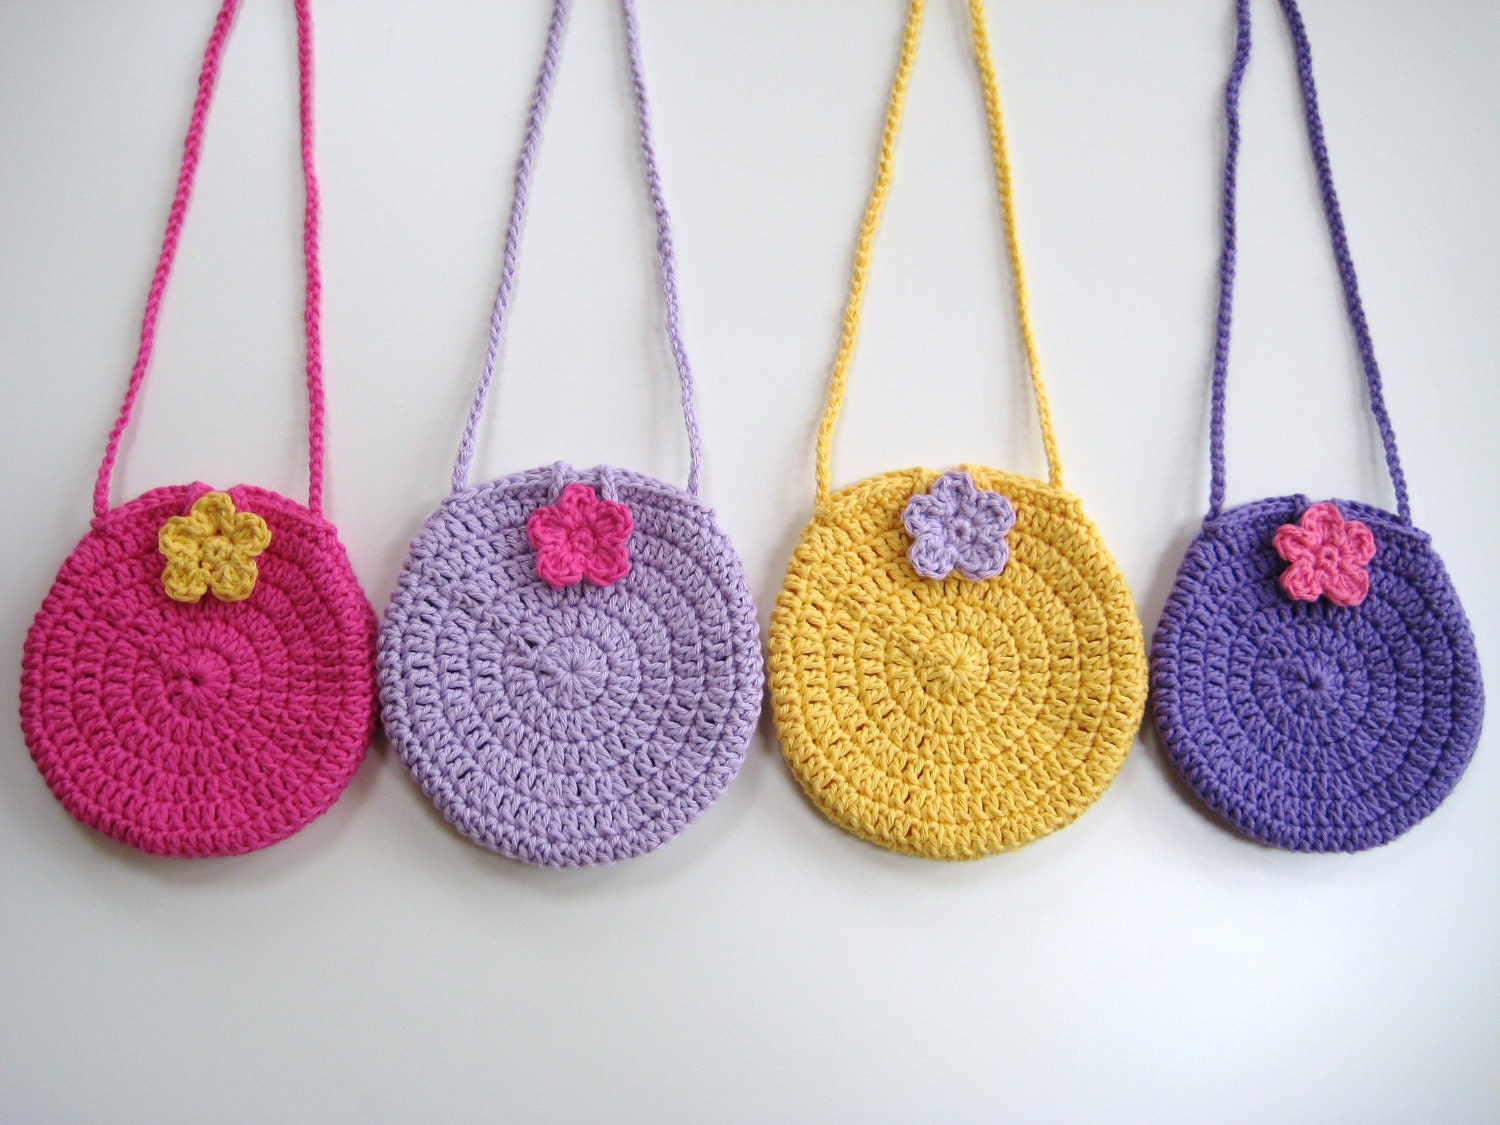 Crochet Pattern Round Circle purse bag INSTANT by avondalepatterns